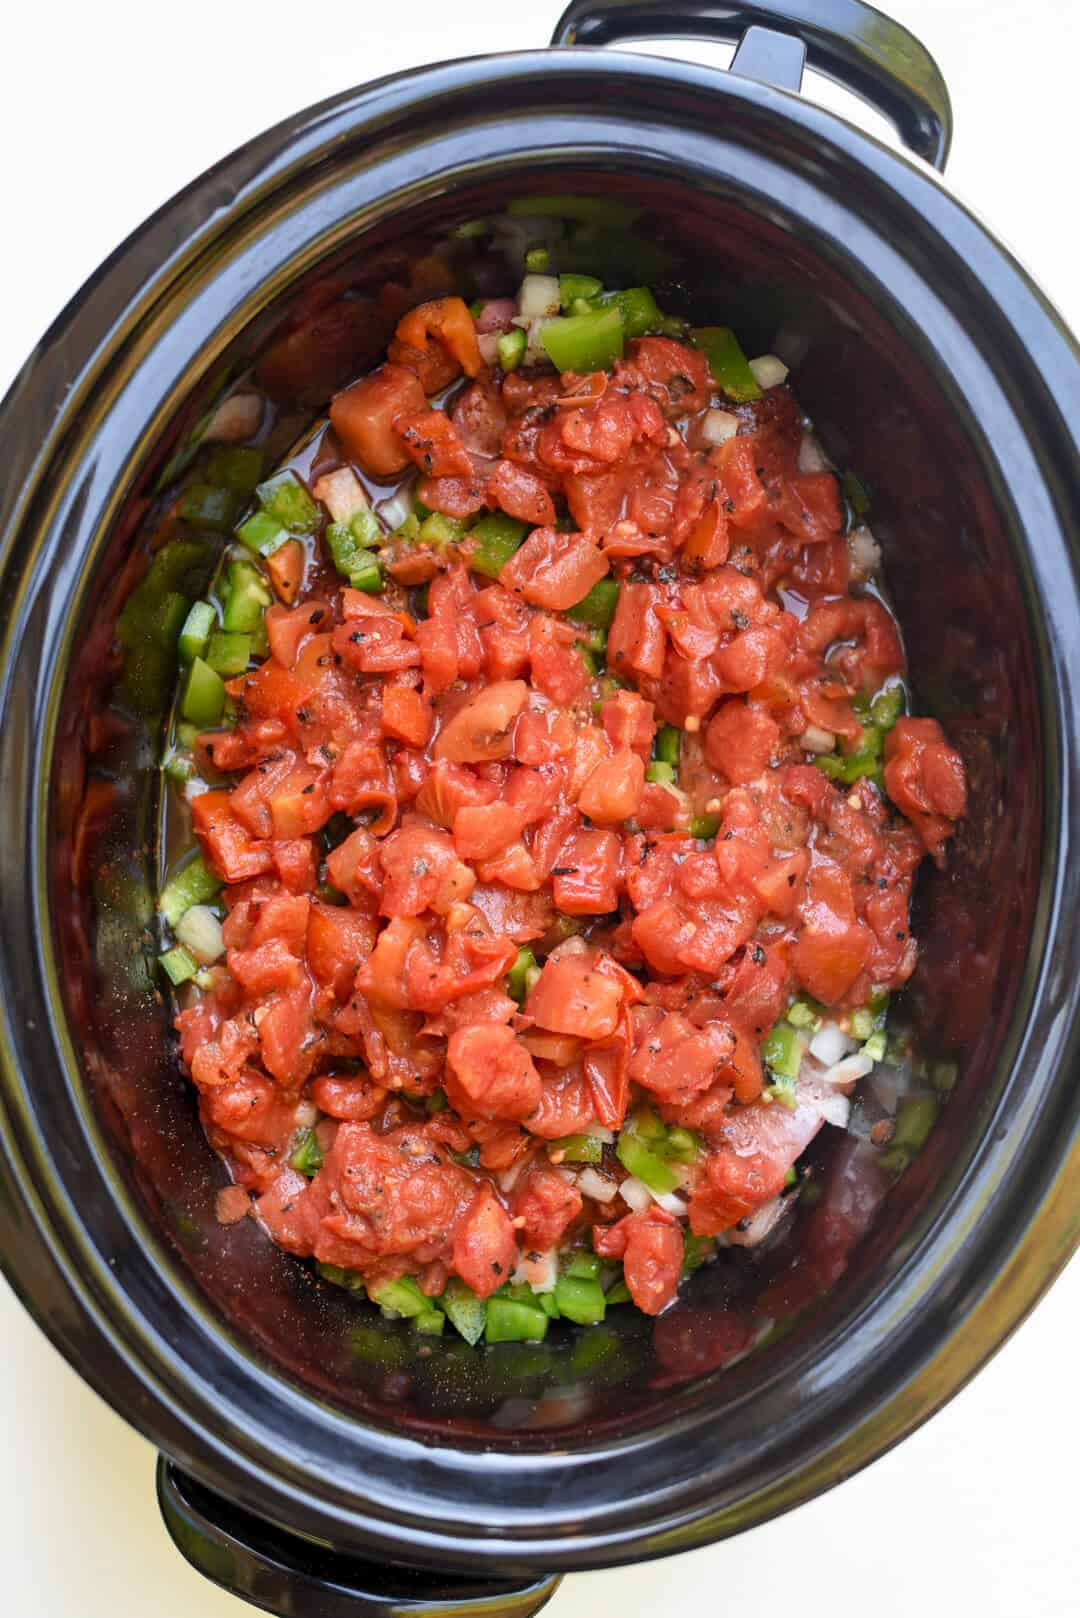 Slow Cooker Shredded Mexican Pork with Beans